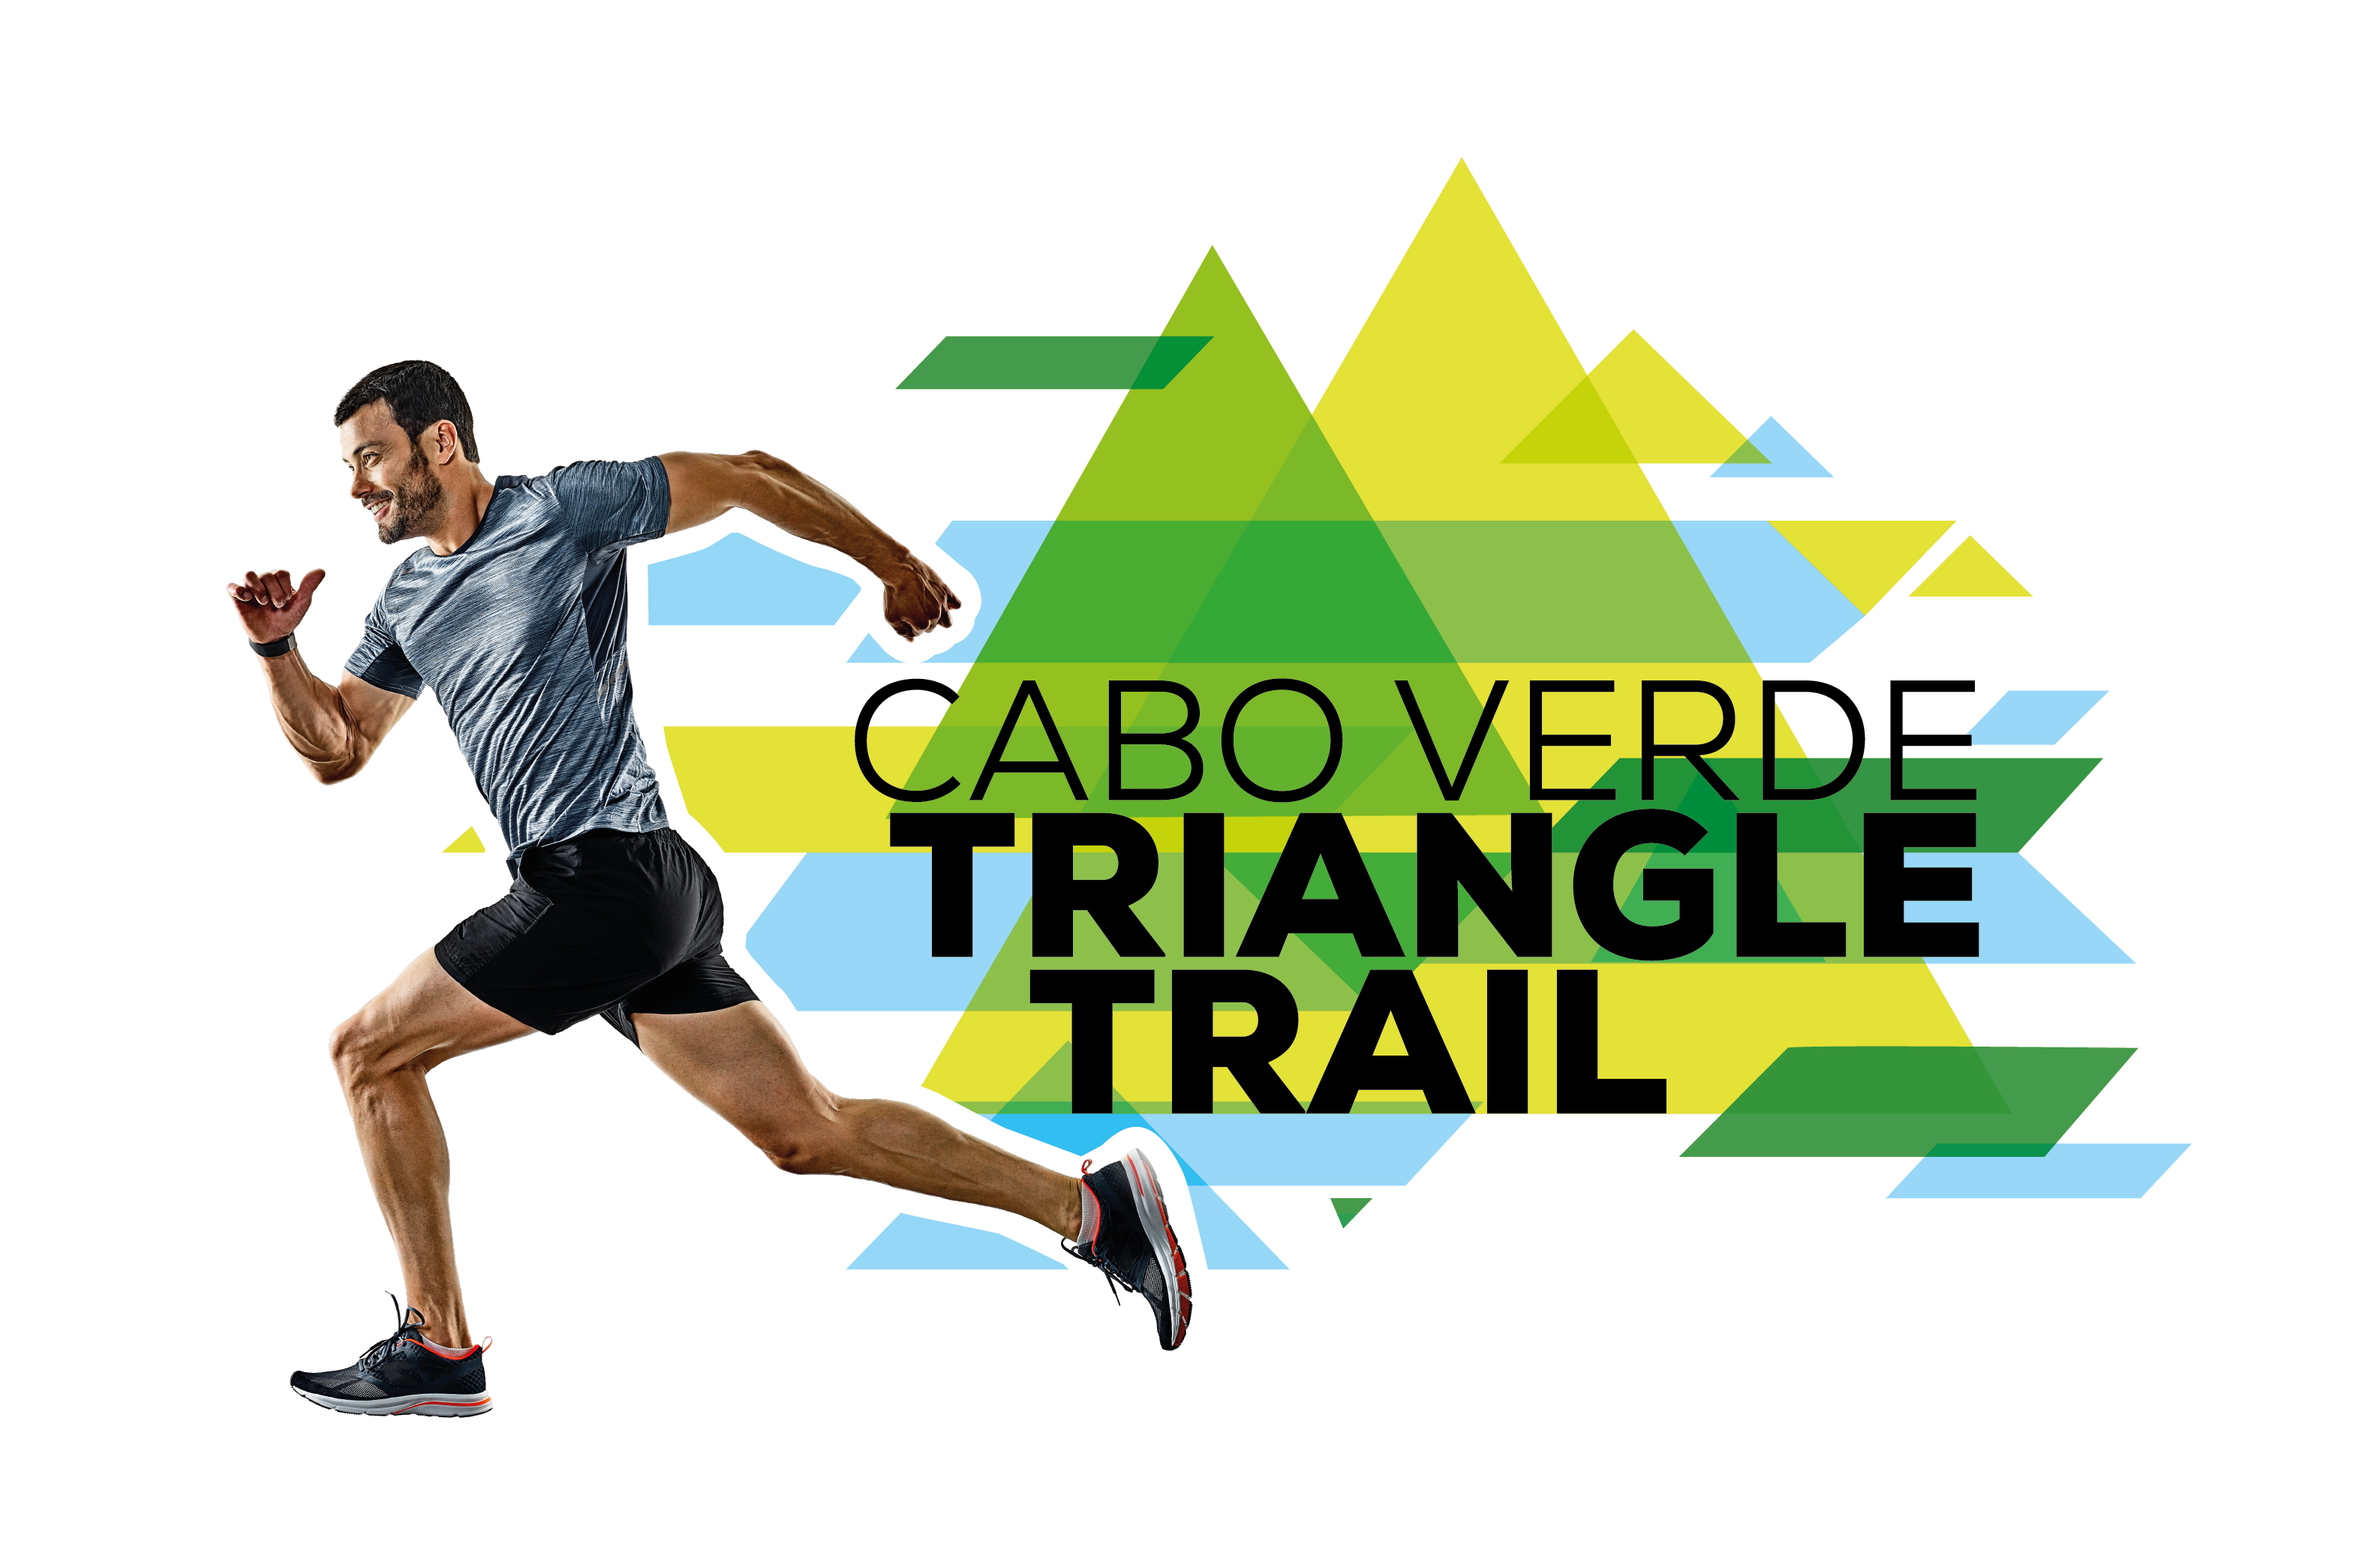 Cabo Verde Triangle Trail